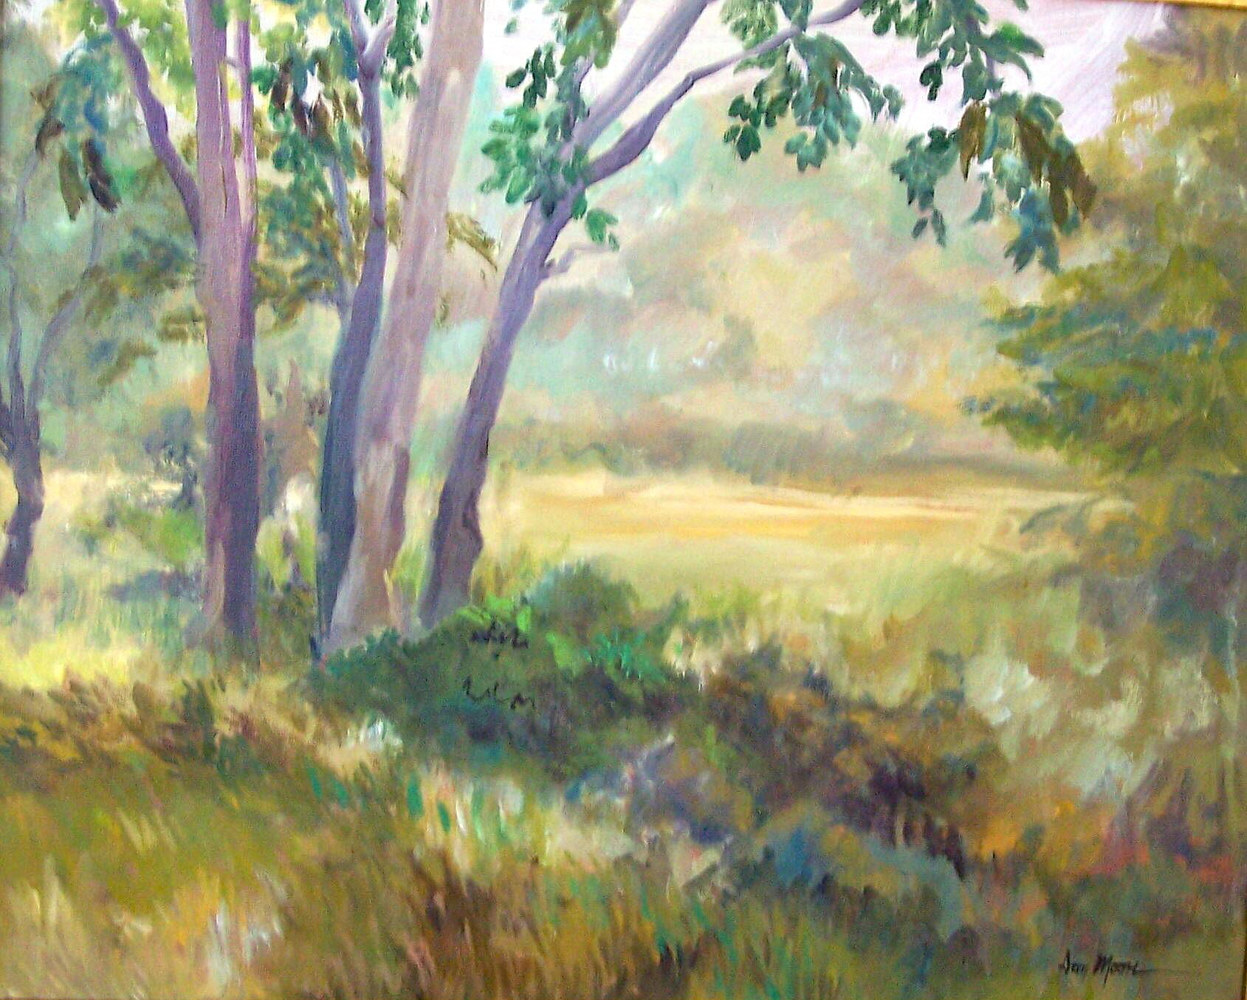 Peaceful meadow - 16 x 20 by Don Moore